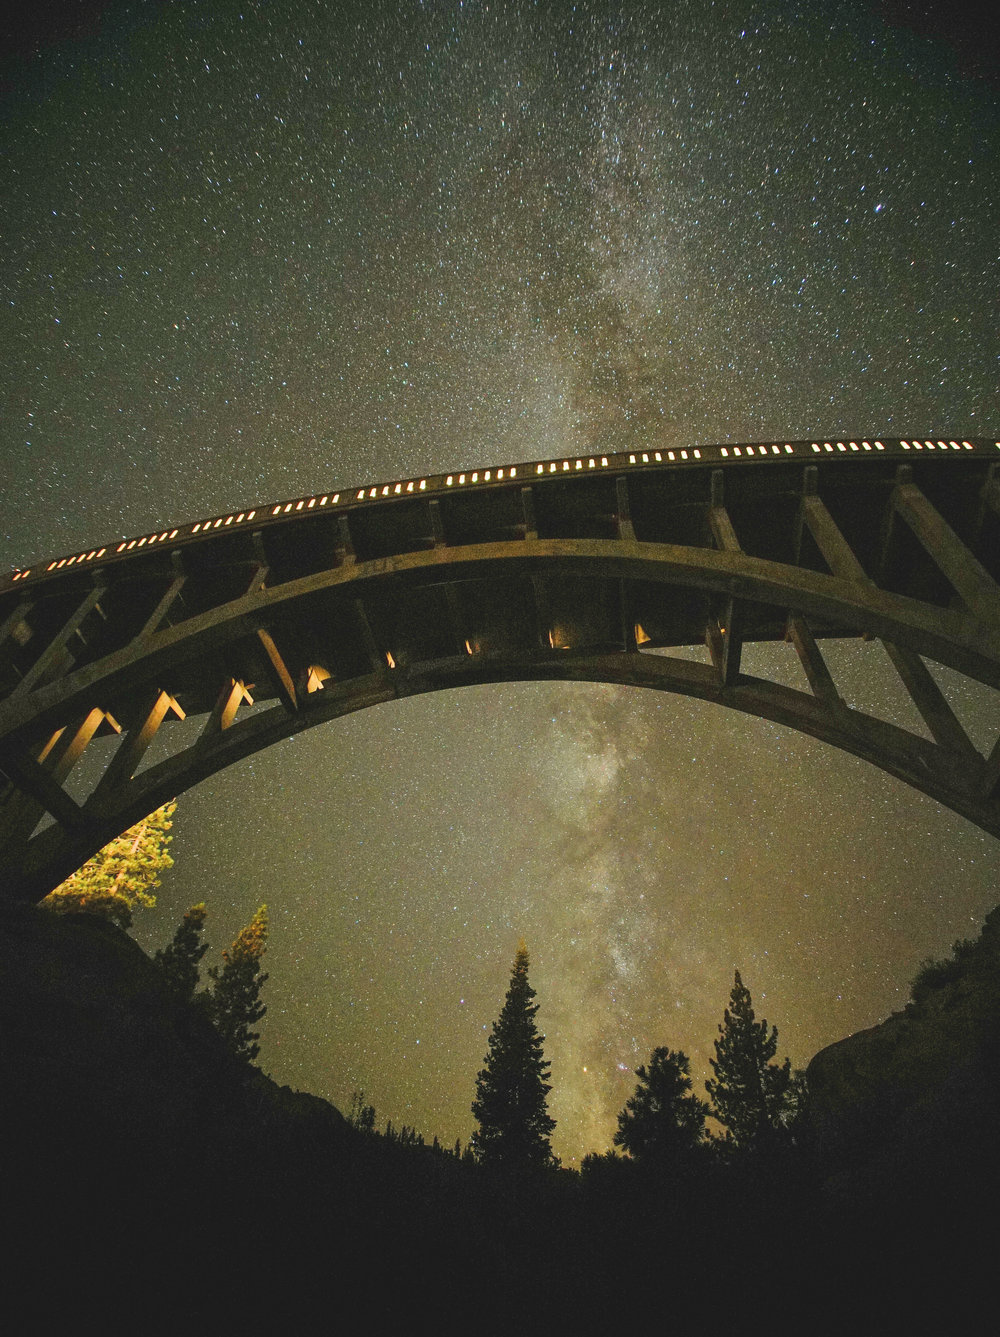 Donnor Bridge [Truckee, CA]